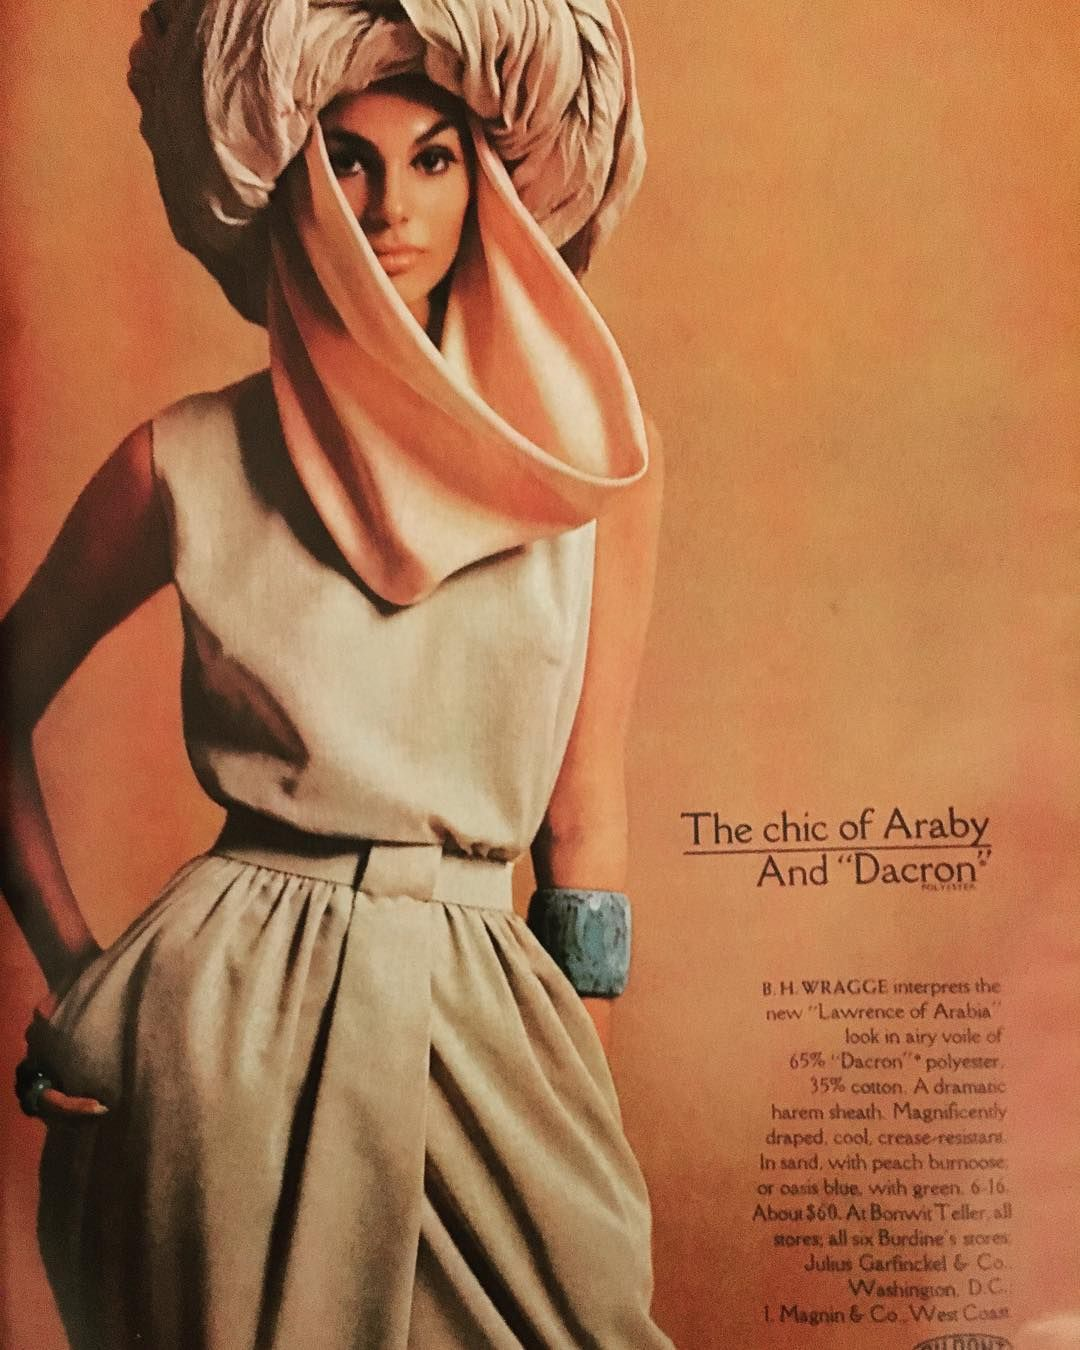 the chic of araby and dacron: b.h. wragge interprets the new